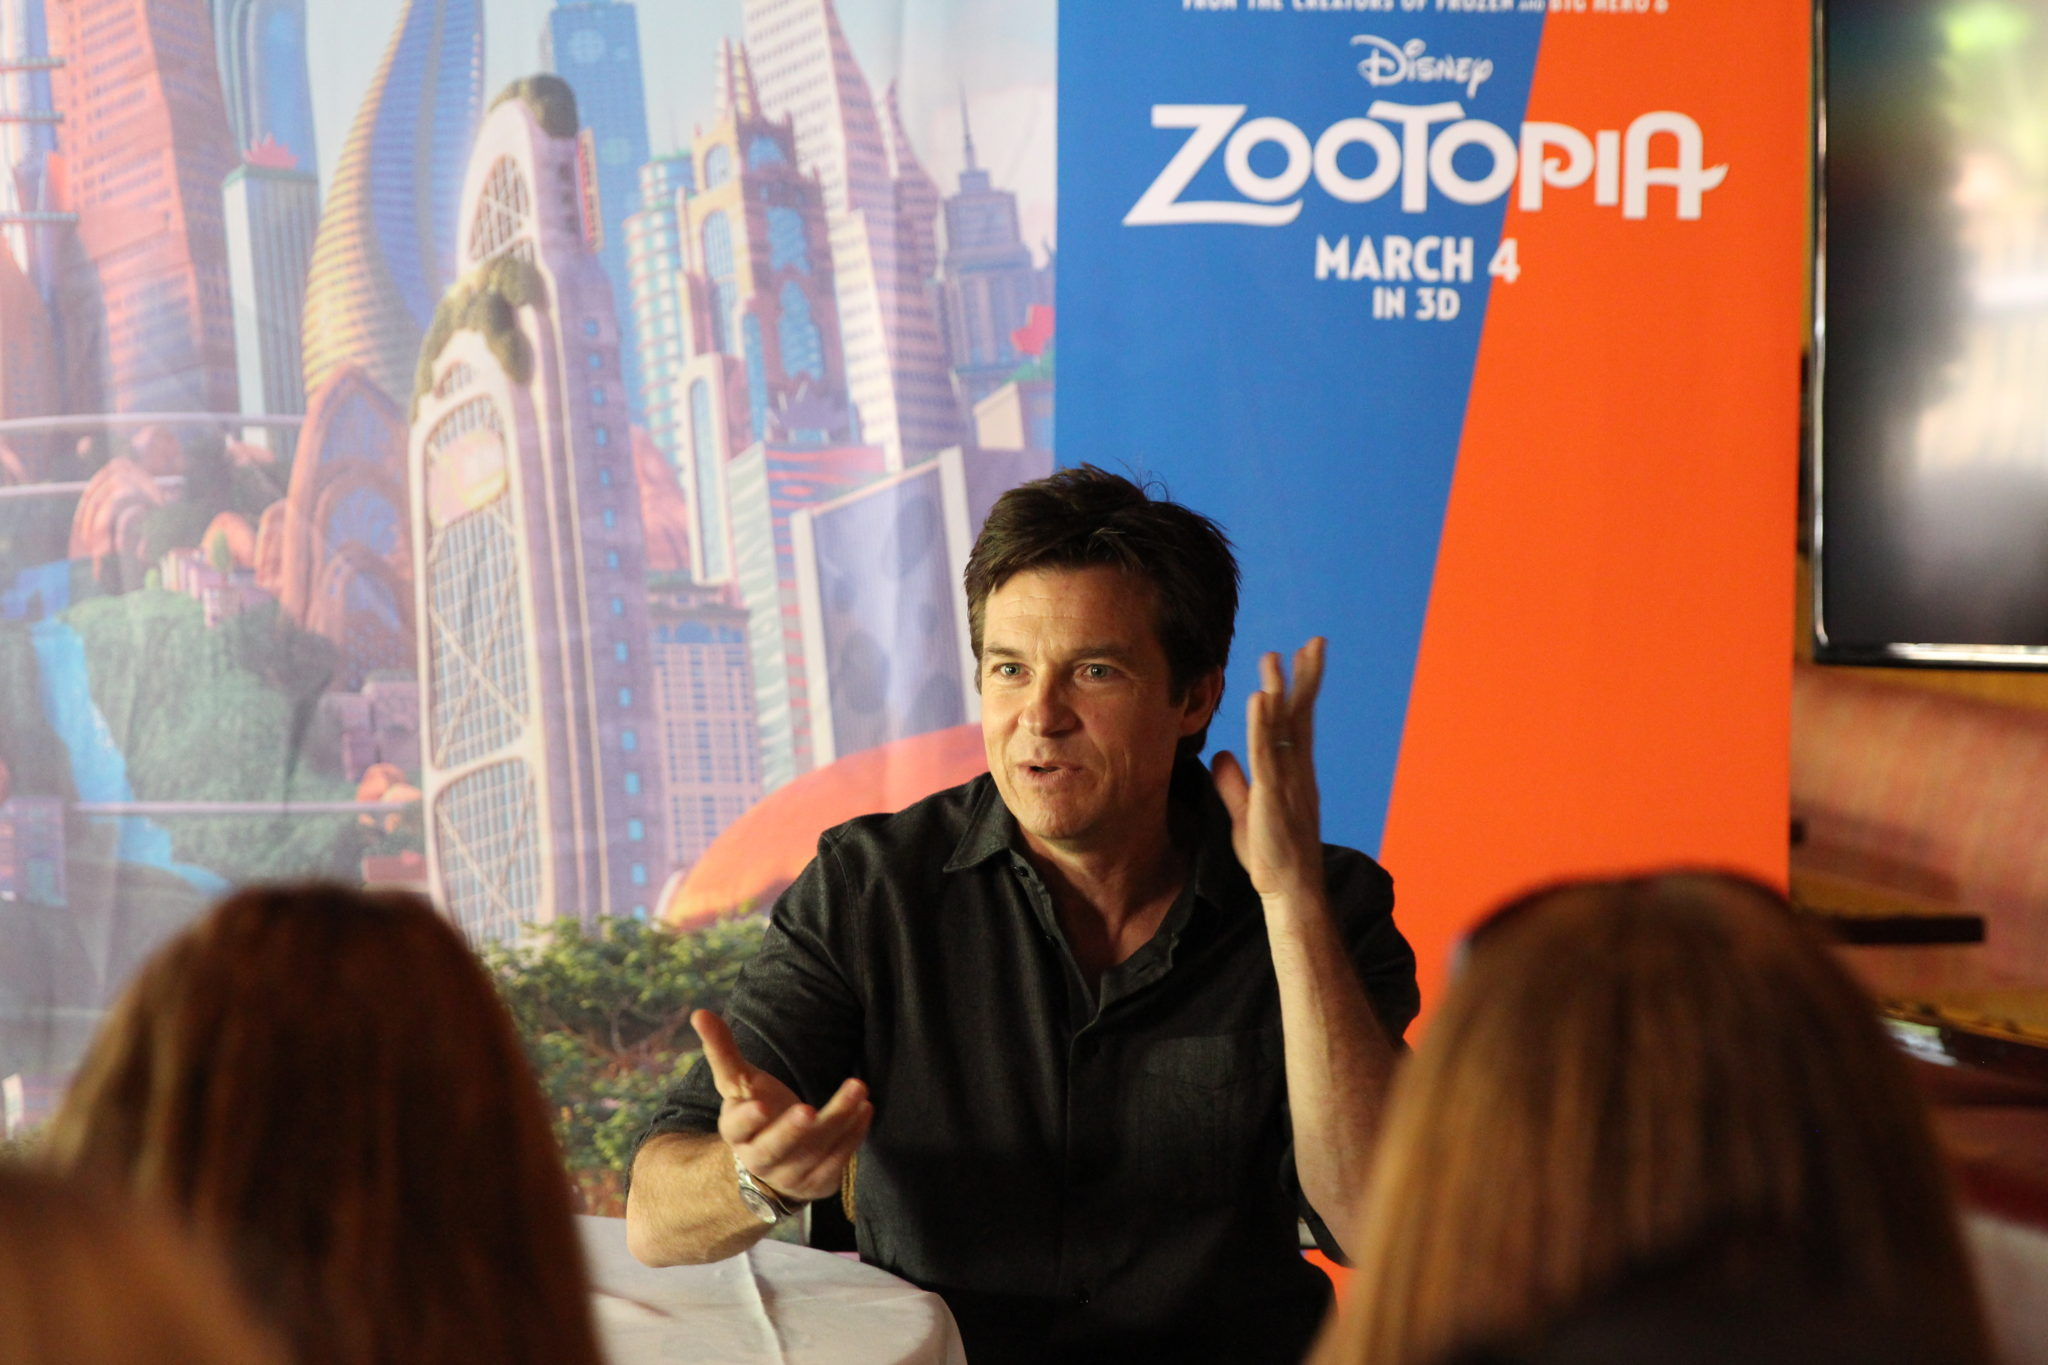 Jason Bateman Lends A Conniving, Sarcastic Humor to Zootopia's Nick Wilde